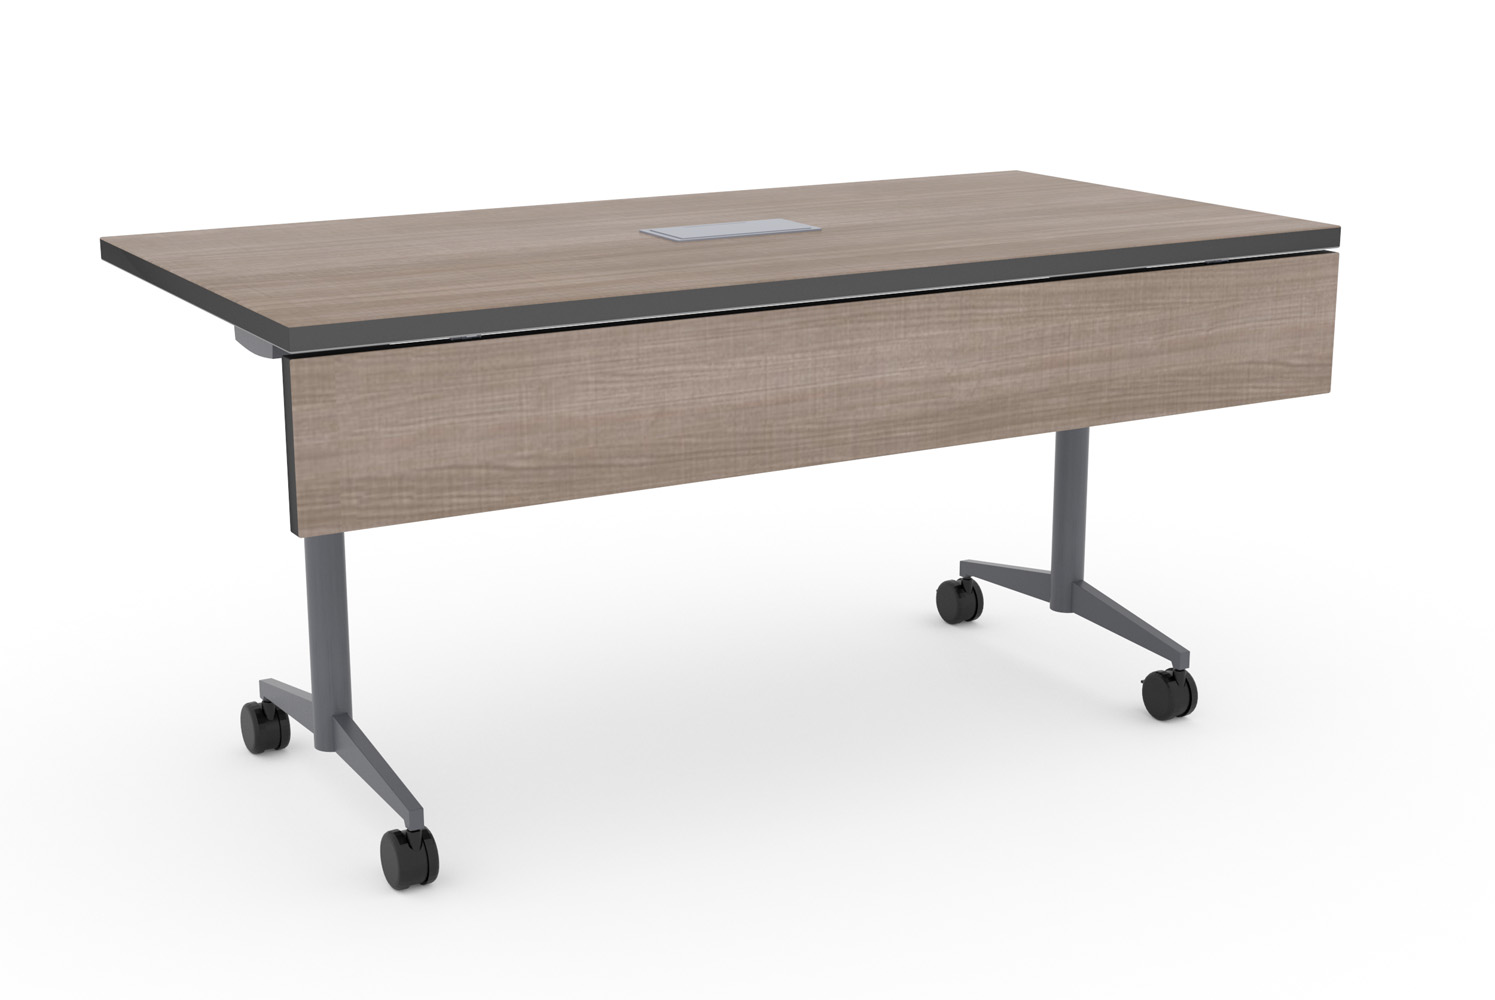 alloworigin category table furniture room training accesskeyid disposition office